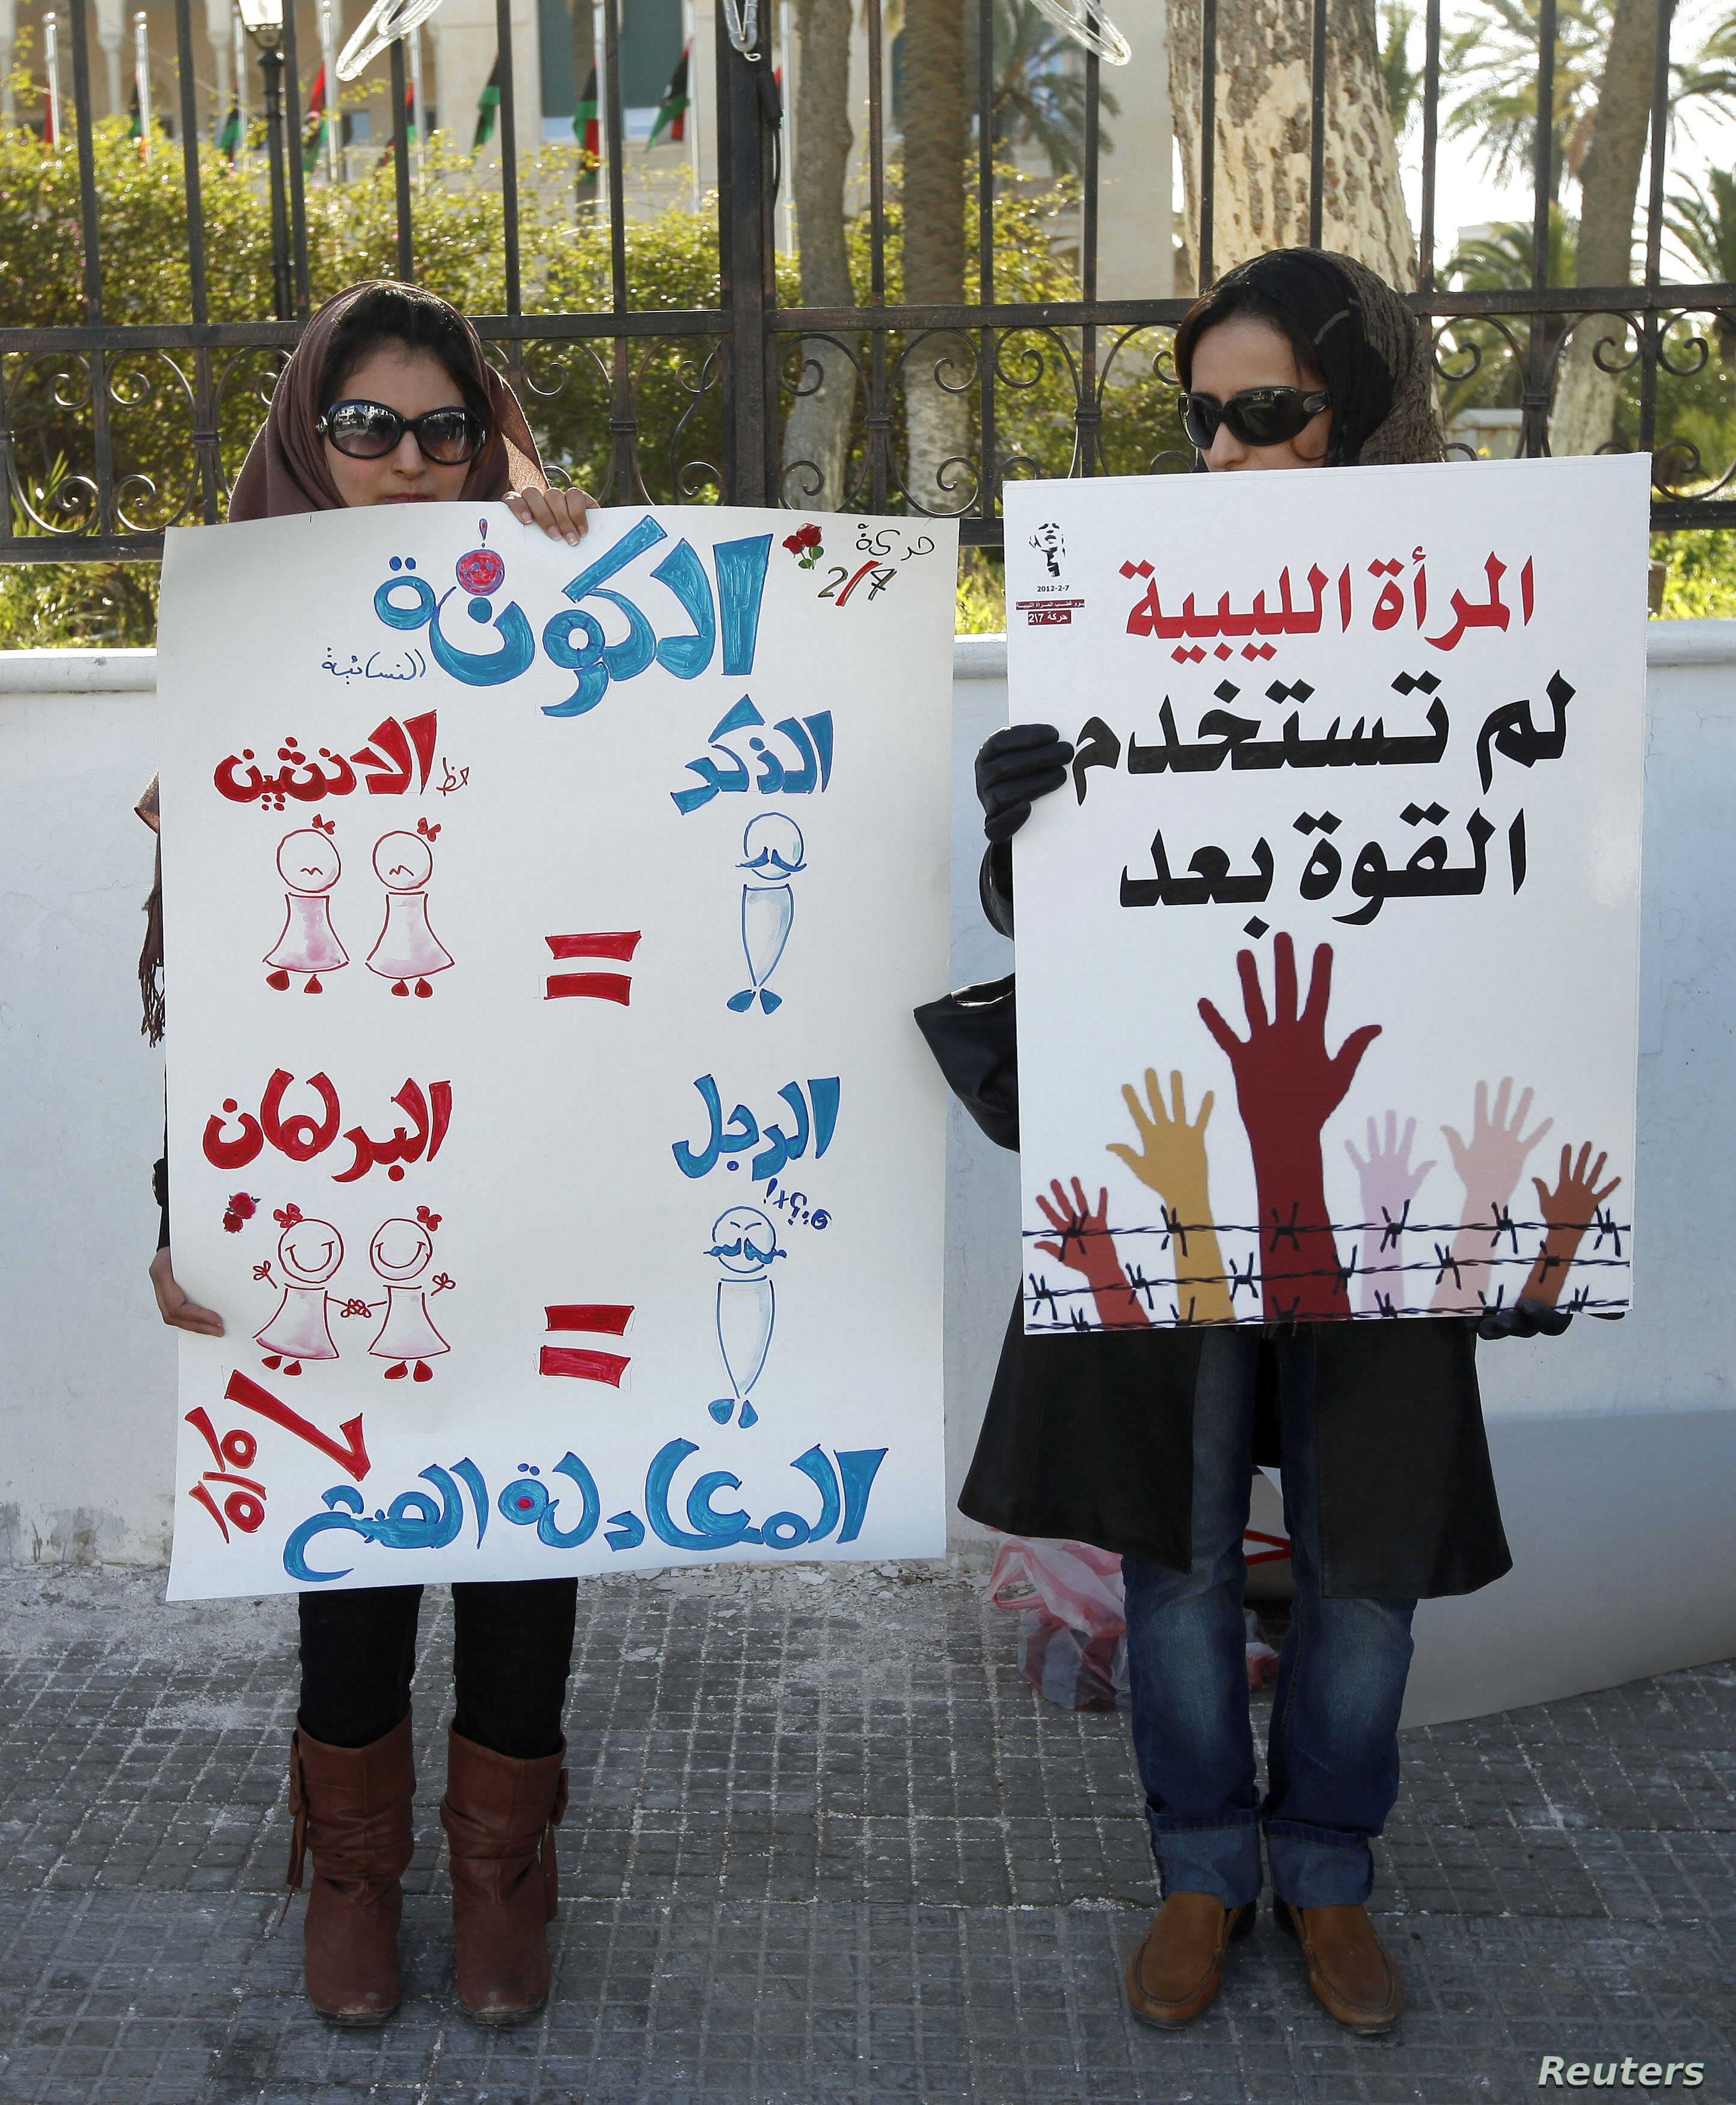 Libya S Women Activists Outraged By Court Ruling On Wives Voice